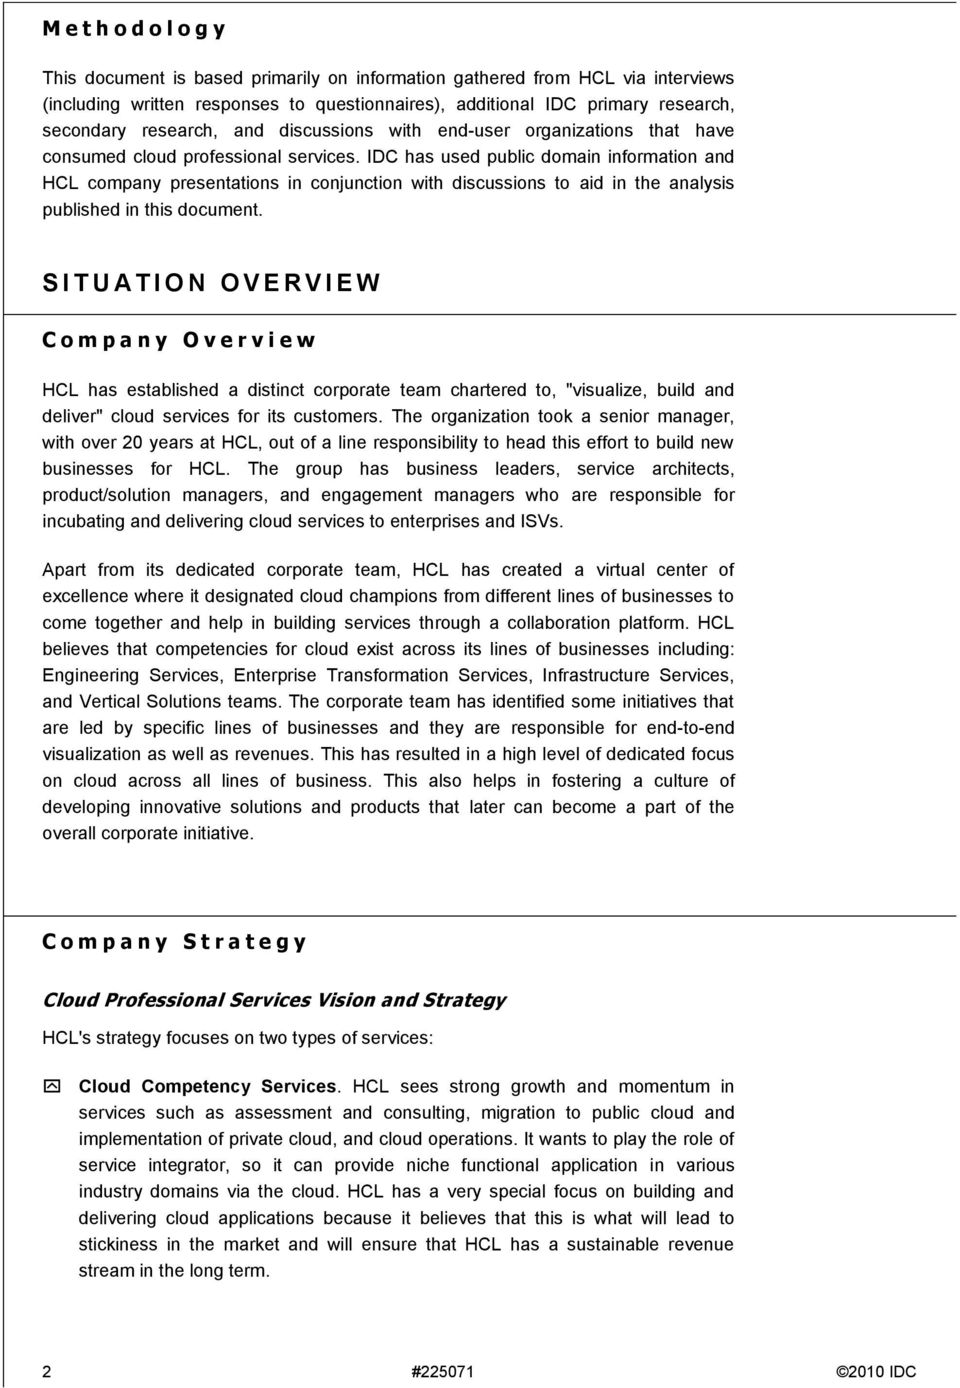 IDC has used public domain information and HCL company presentations in conjunction with discussions to aid in the analysis published in this document.